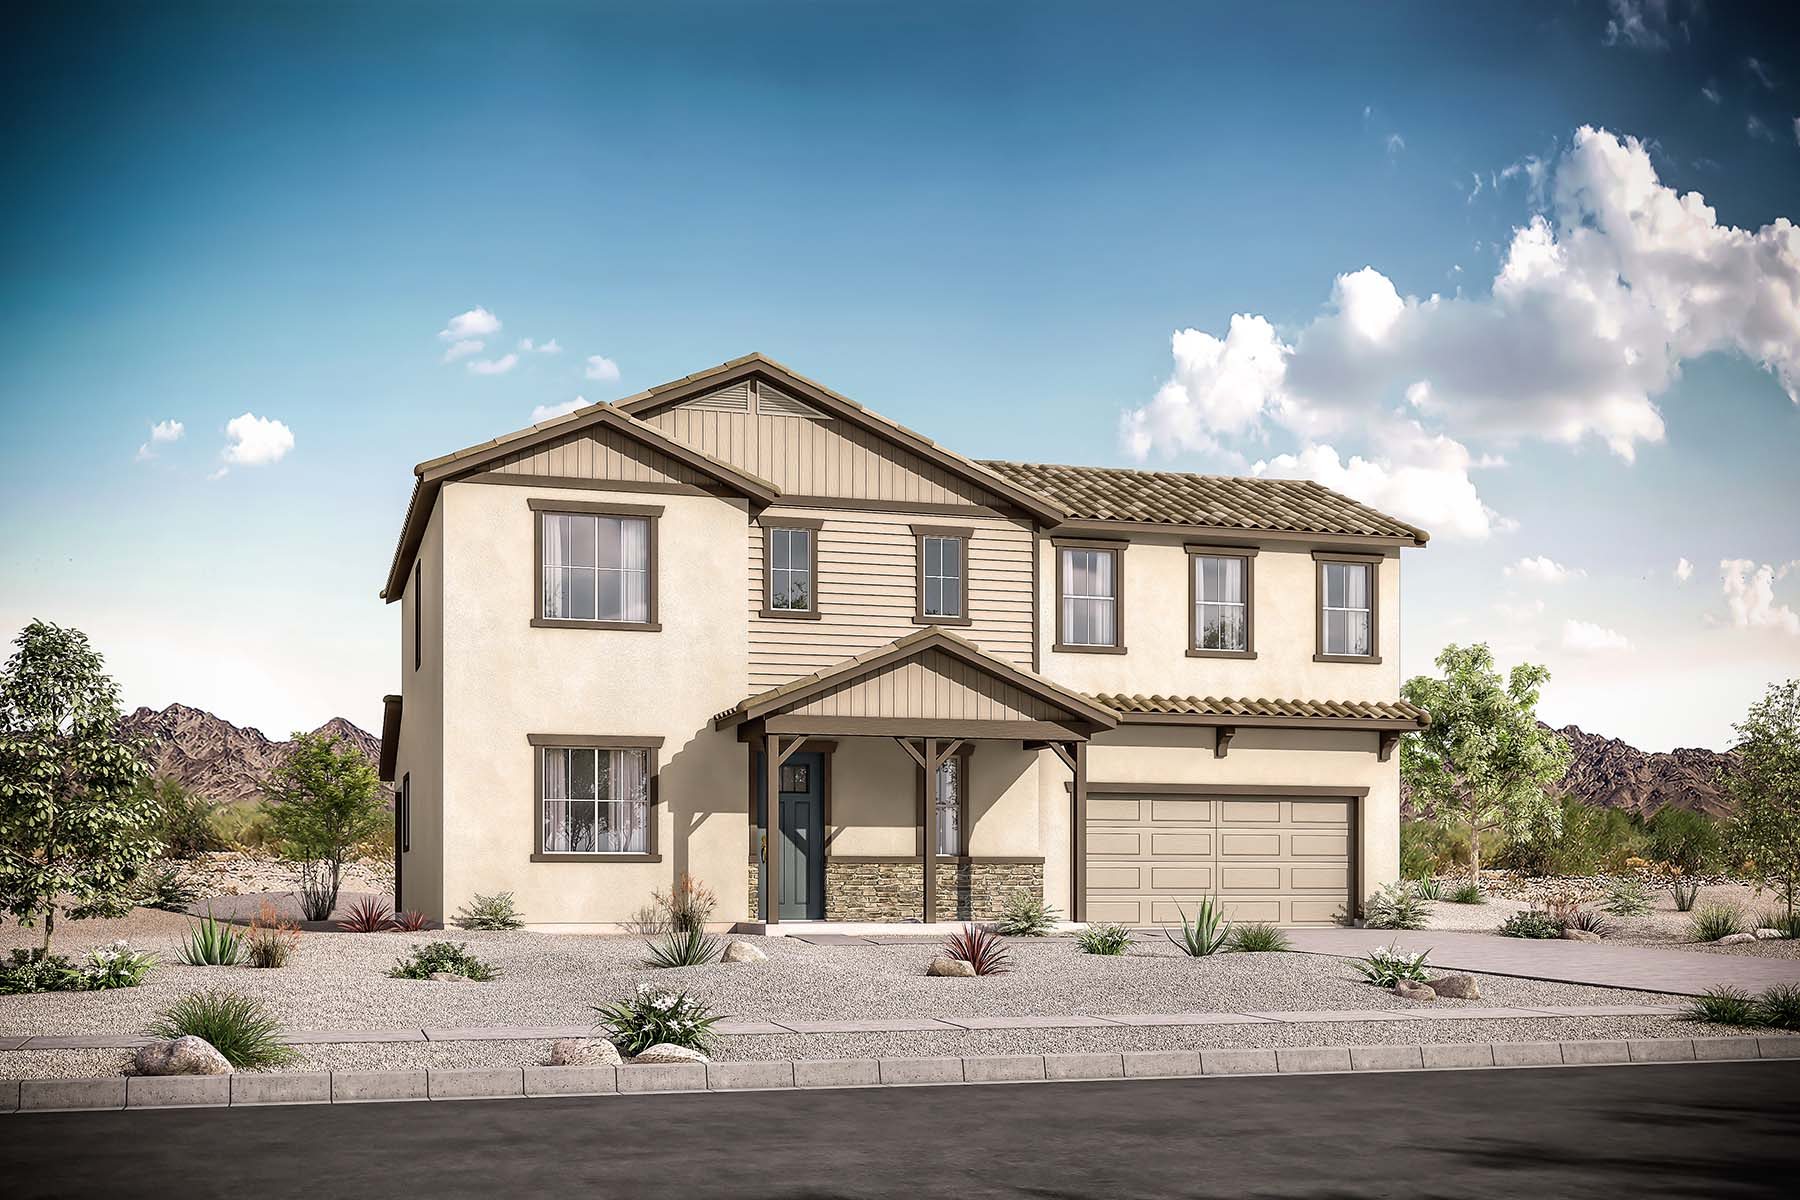 Meridian Plan  at Roosevelt Park in Avondale Arizona by Mattamy Homes